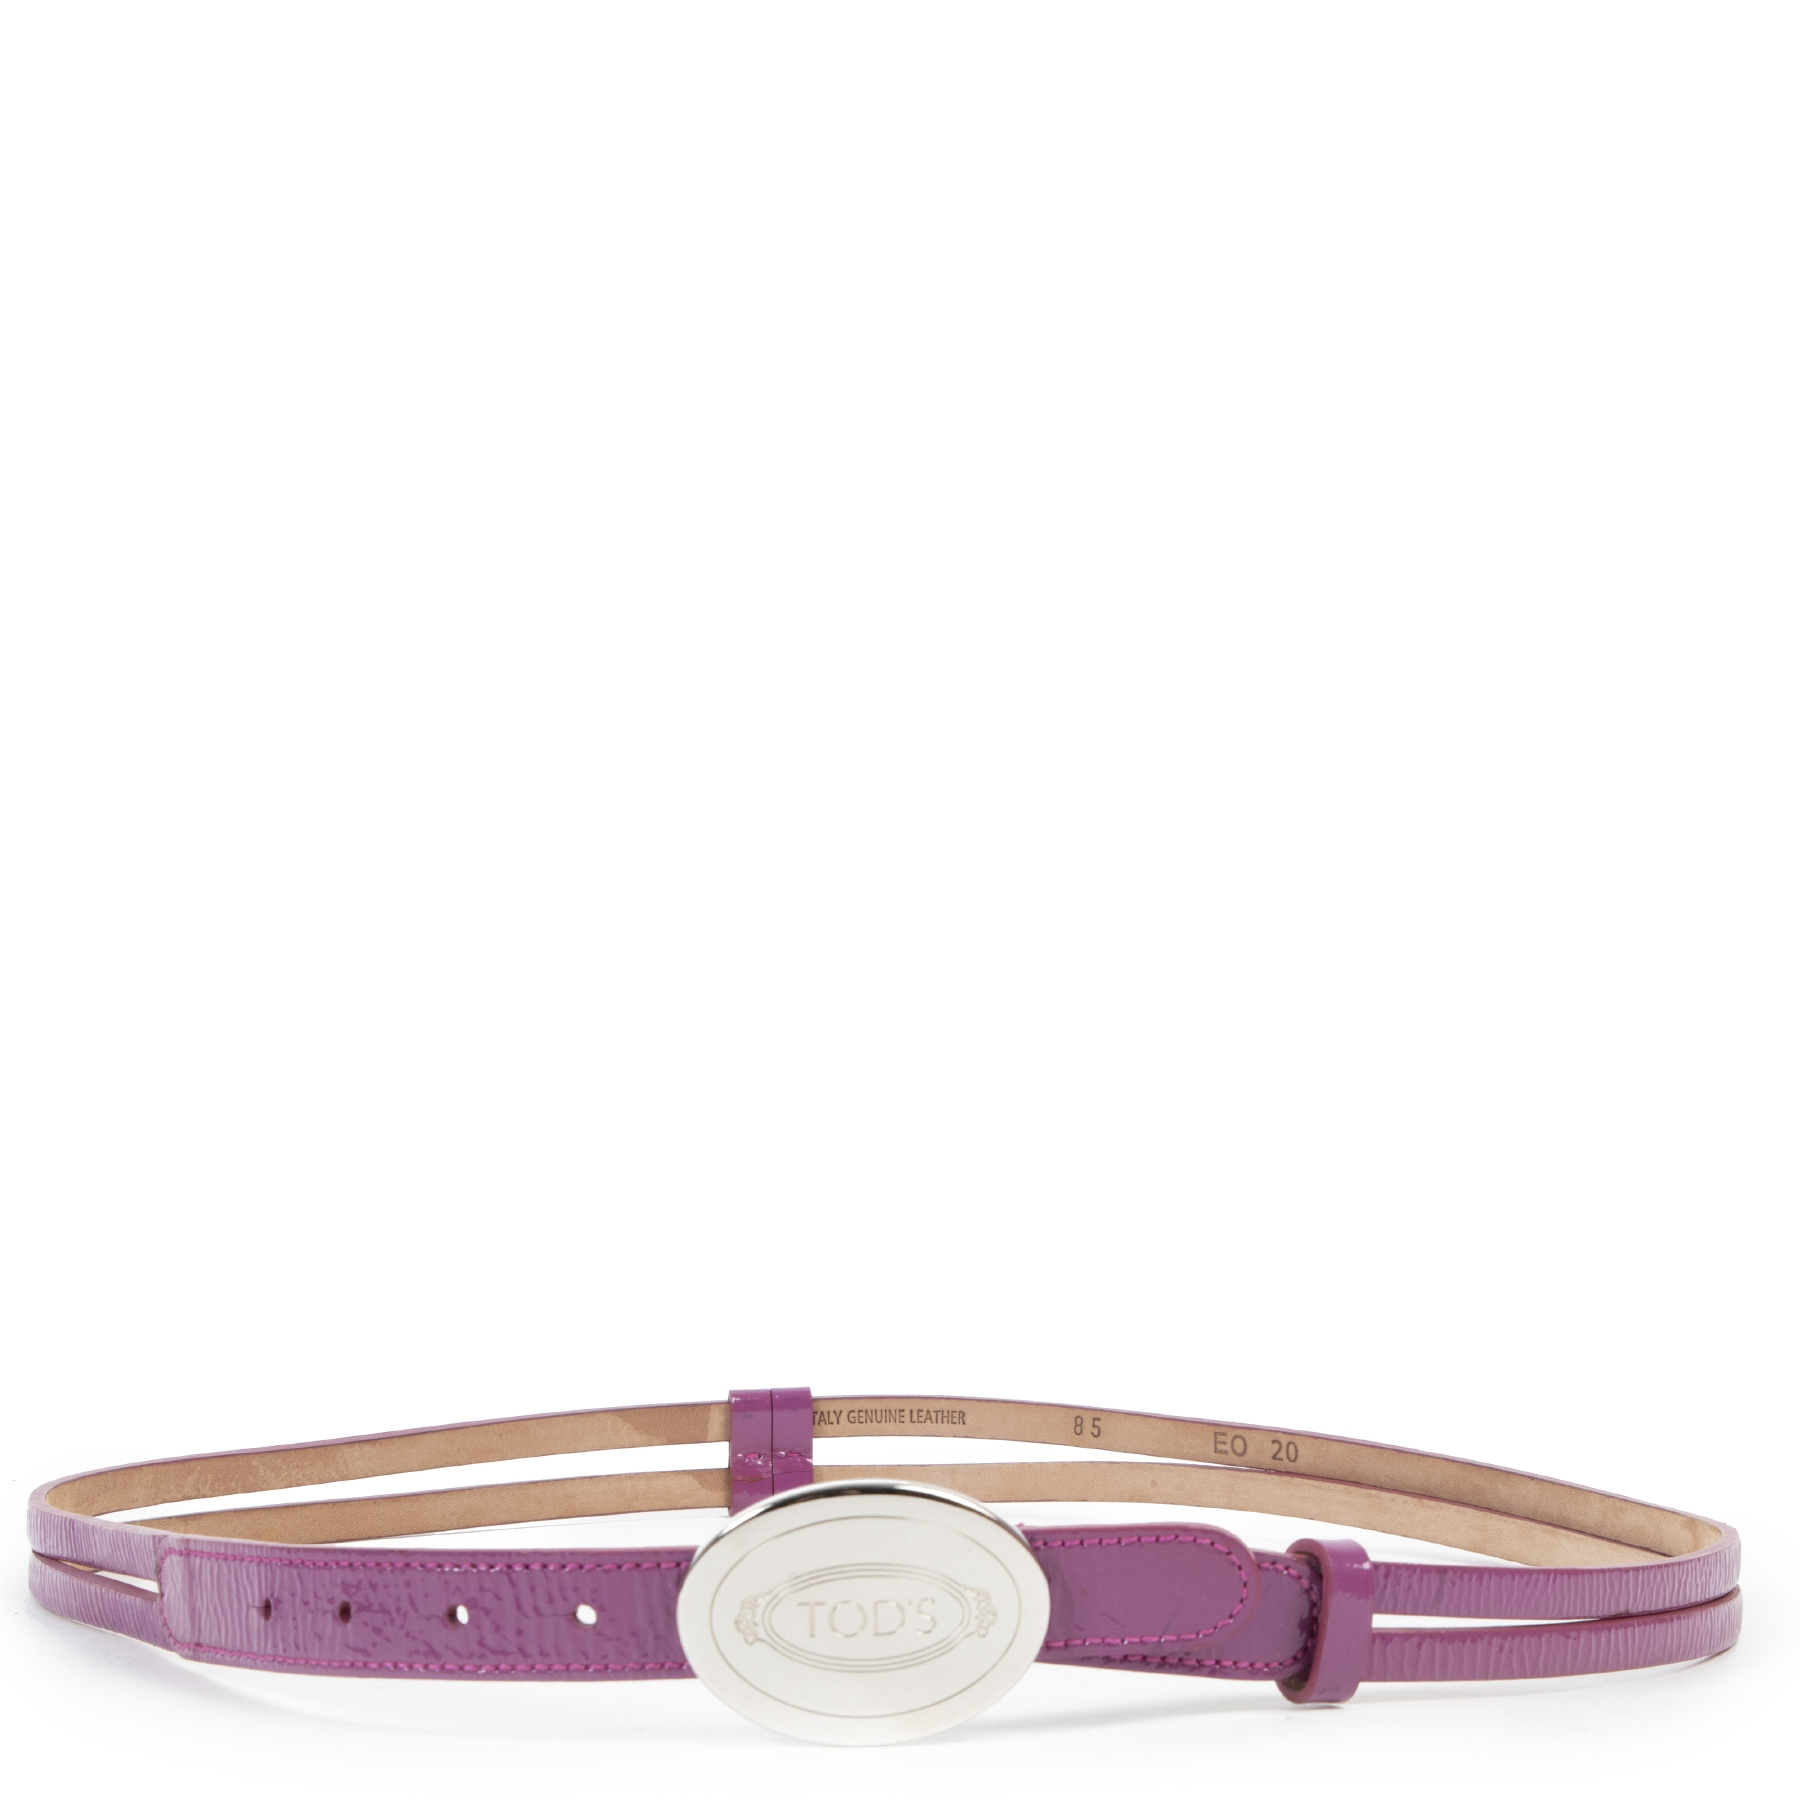 Tod's Purple Patent Leather Belt